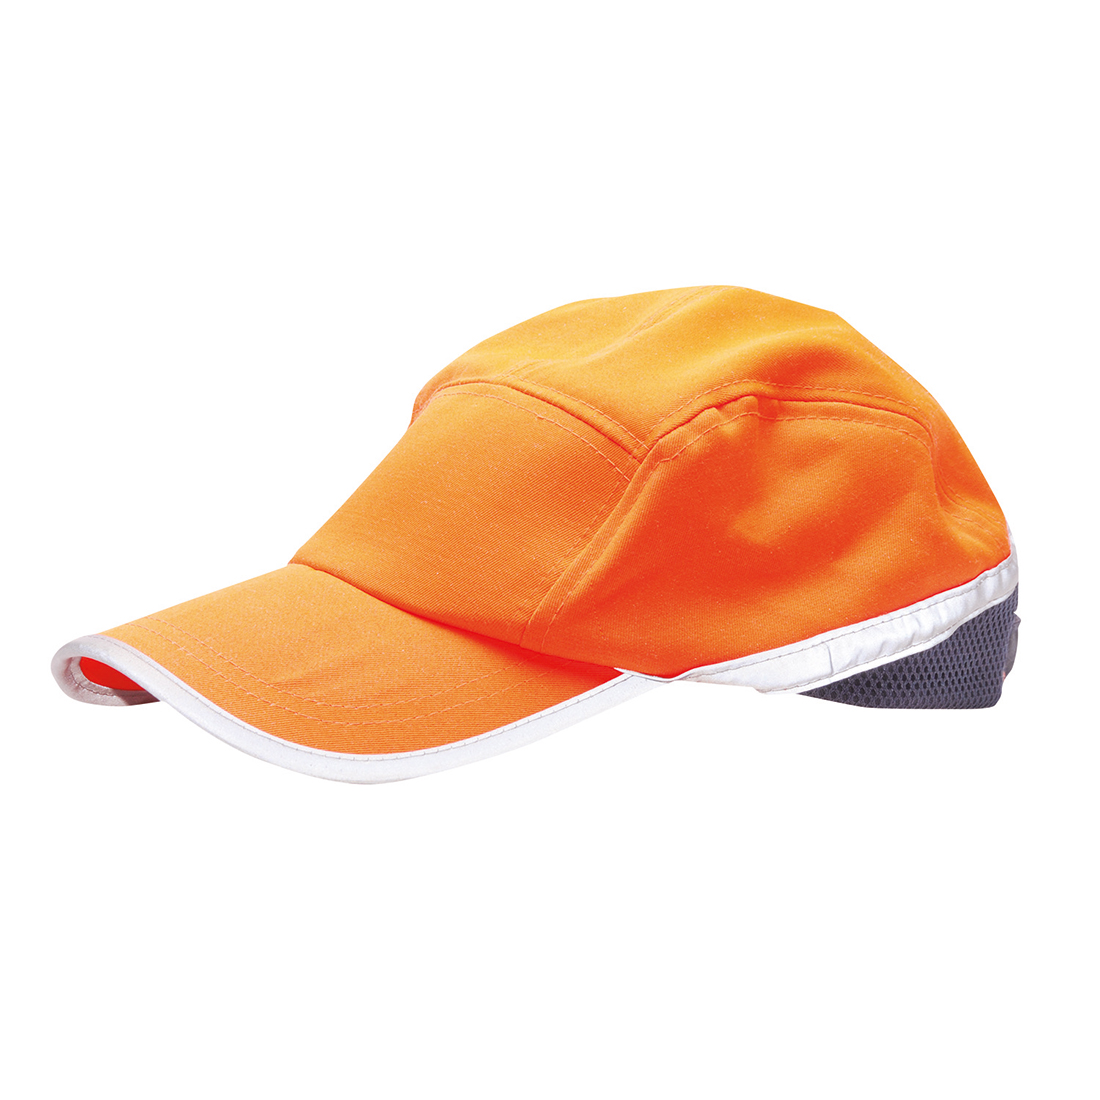 Casquette Baseball HV orange PORTWEST HB10